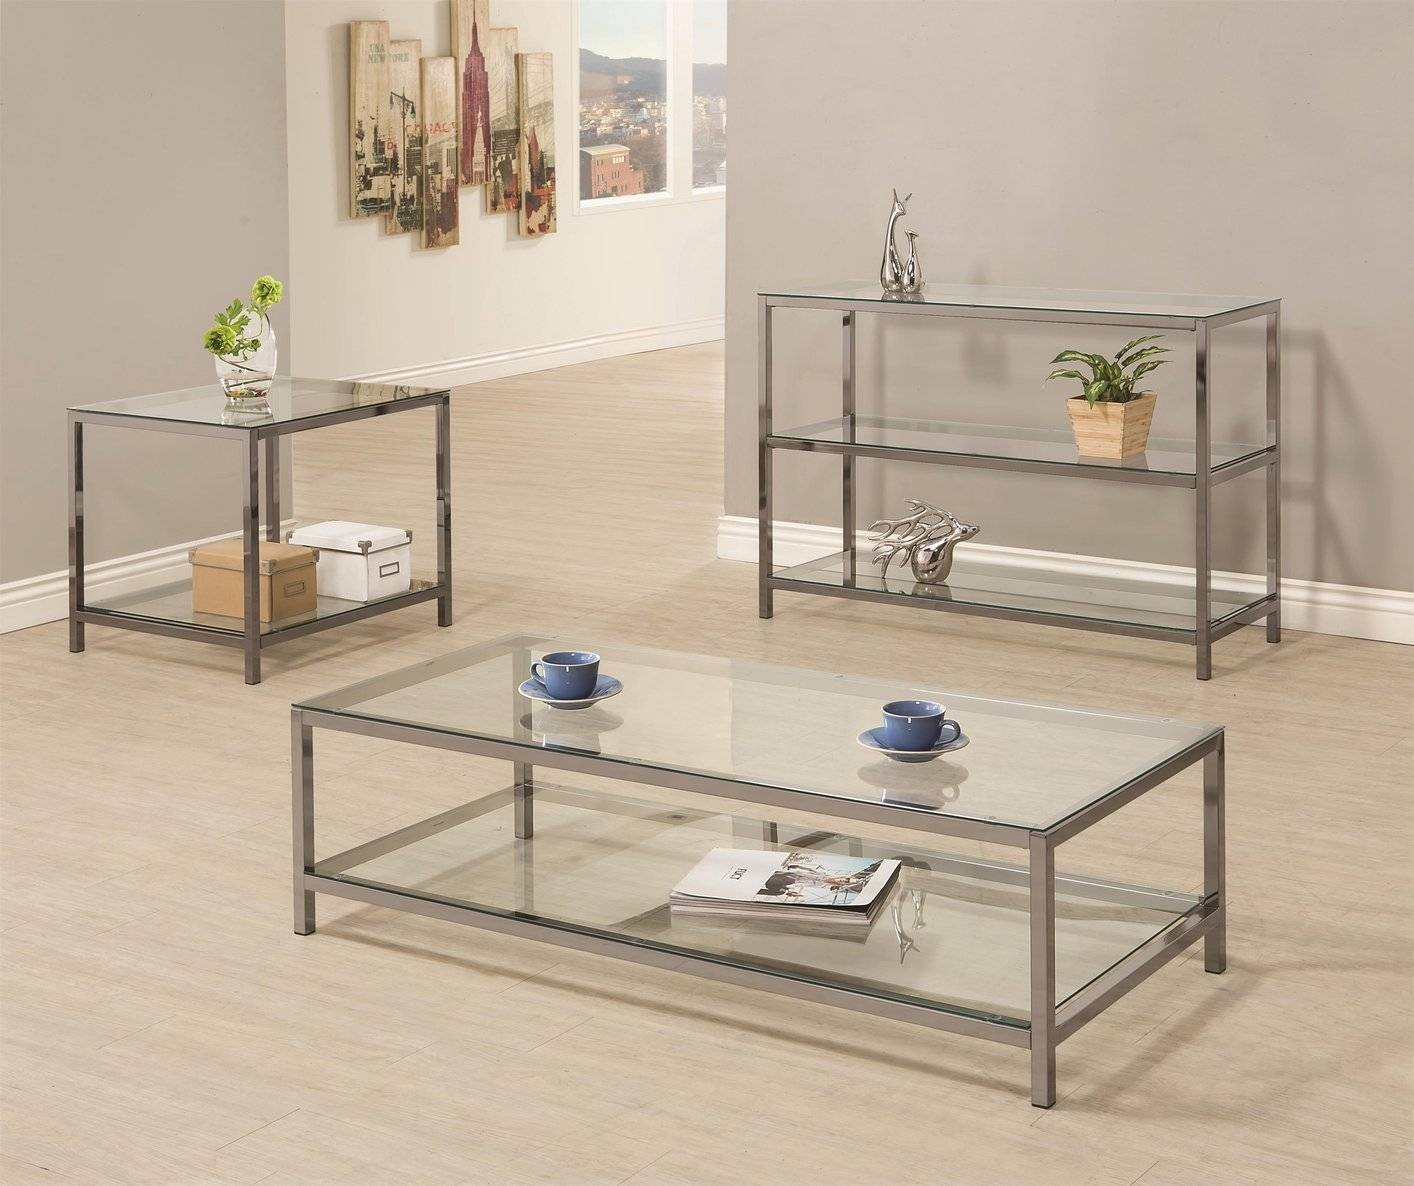 Coaster 720229 Black Glass Sofa Table - Steal-A-Sofa Furniture within Metal Glass Sofa Tables (Image 6 of 30)